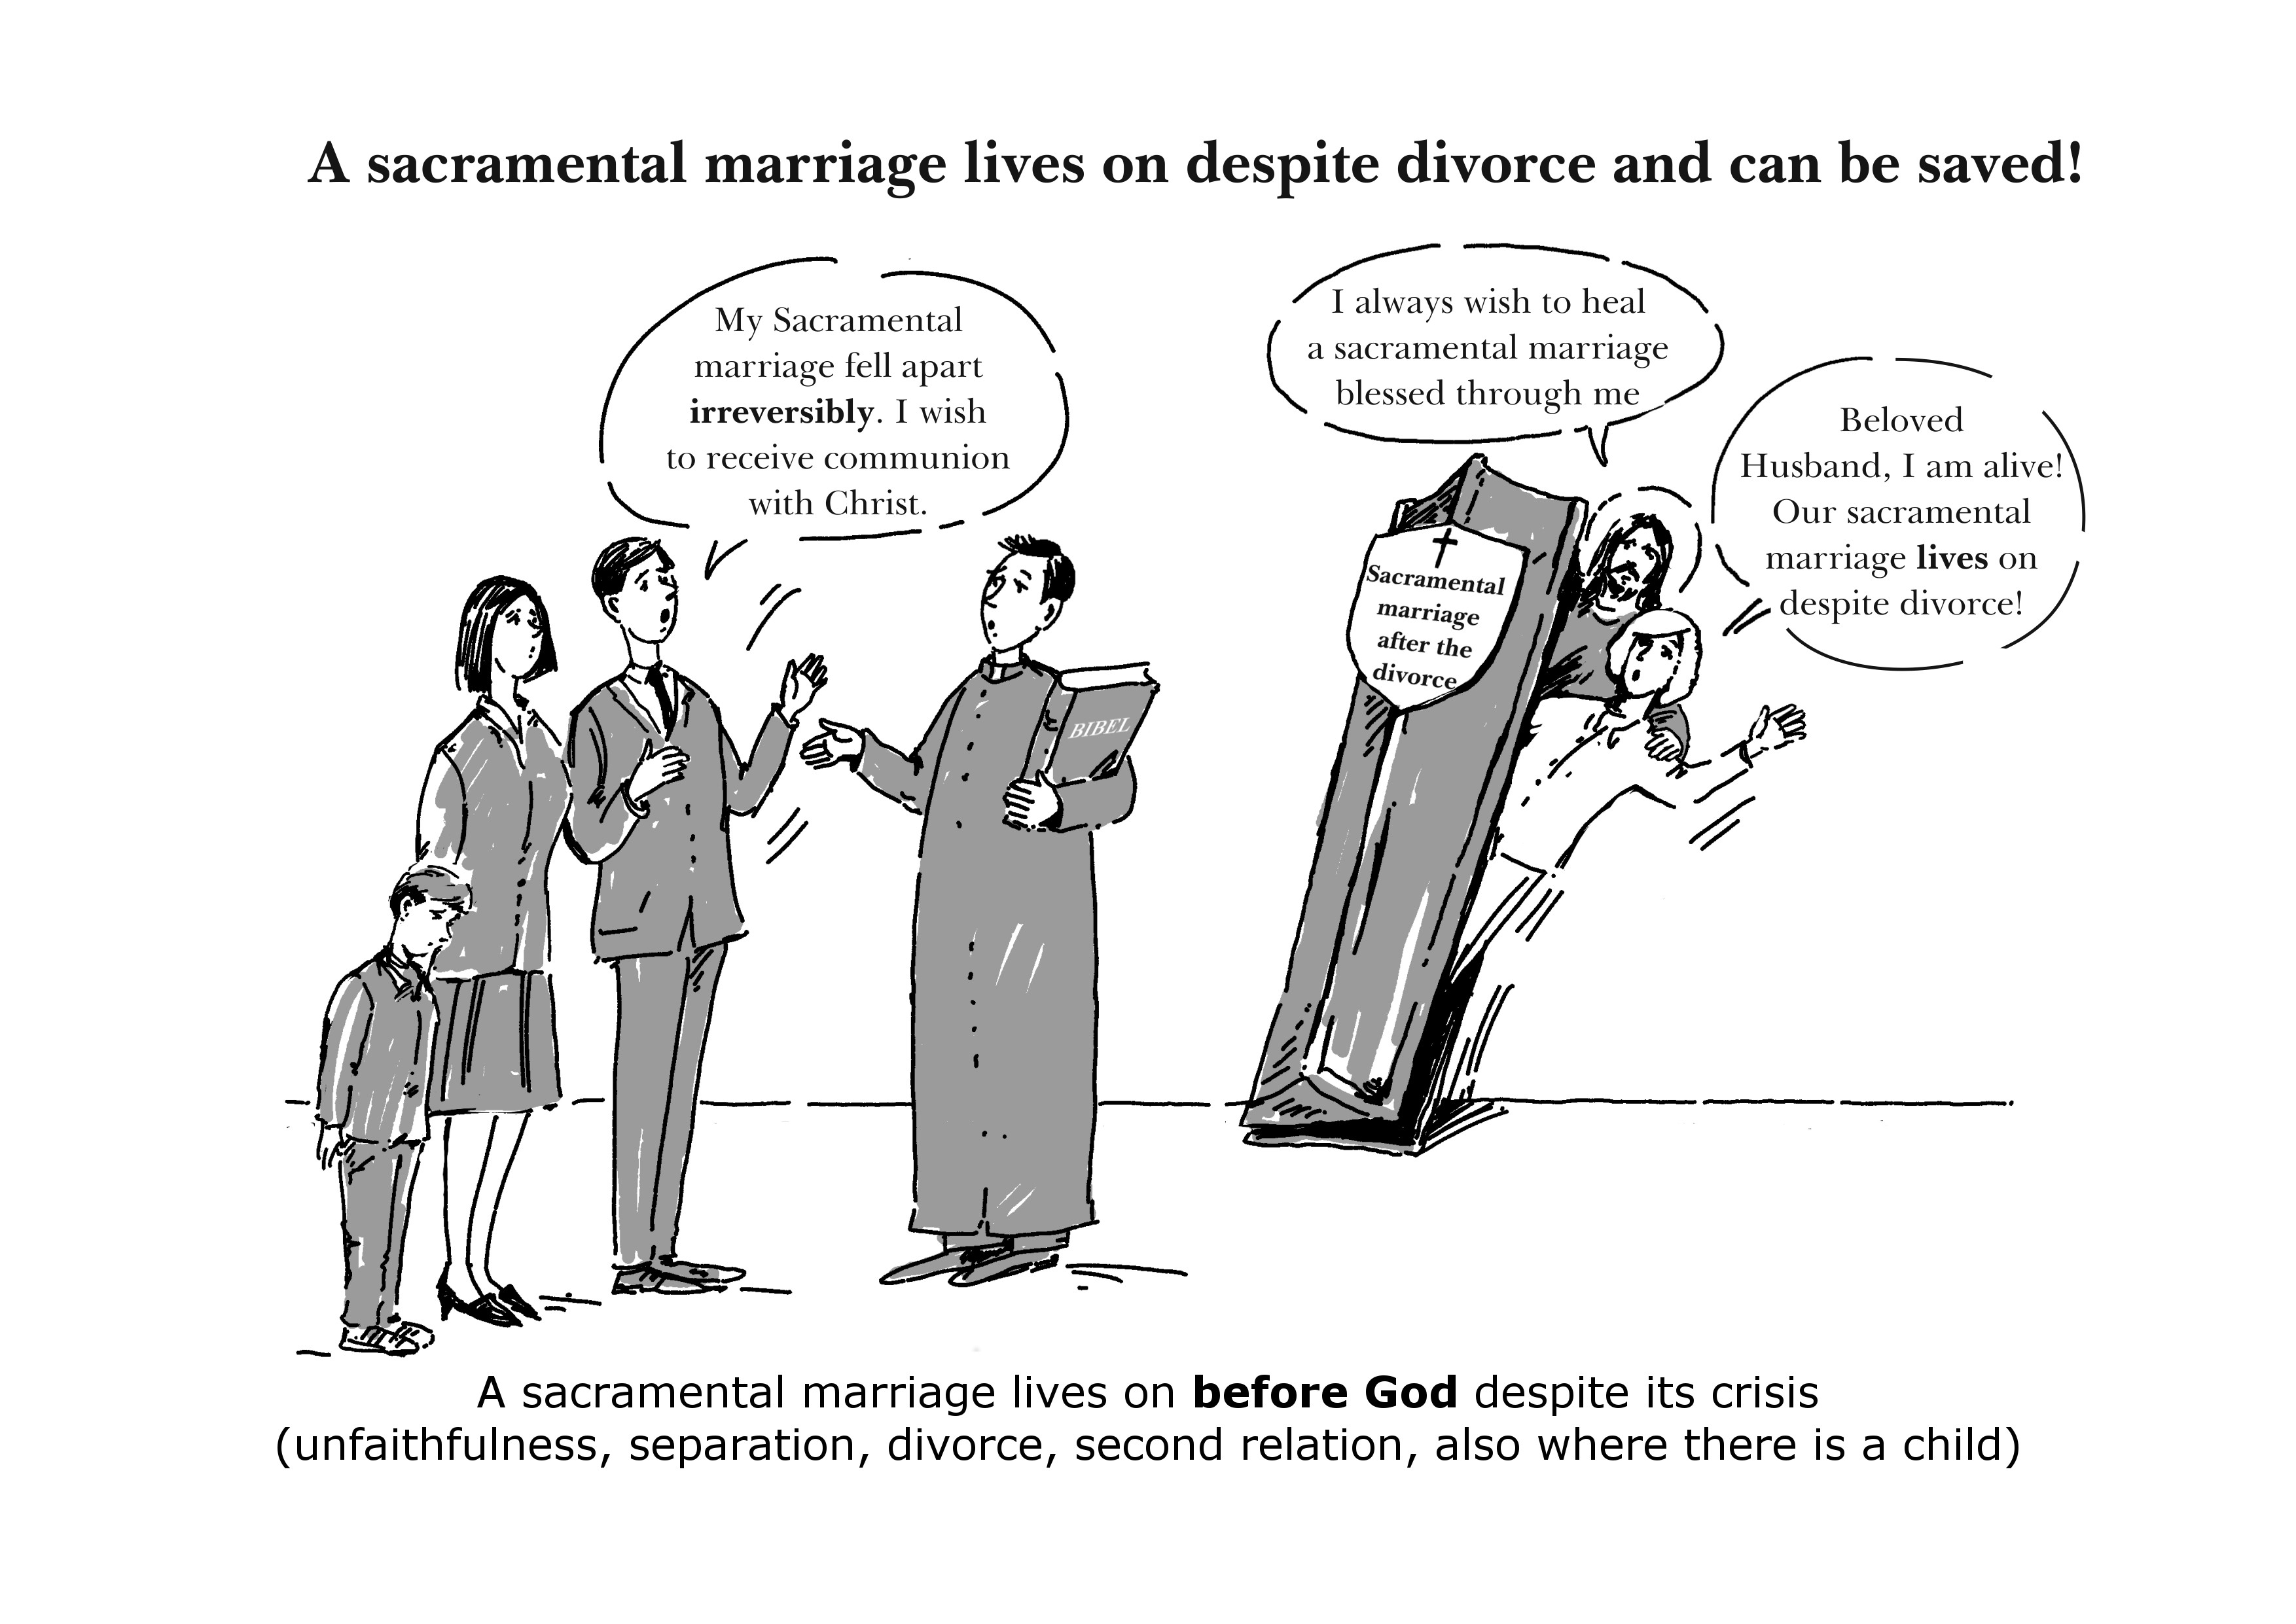 a-sacramental-marriage-lives-on-despite-divorce-and-can-be-saved